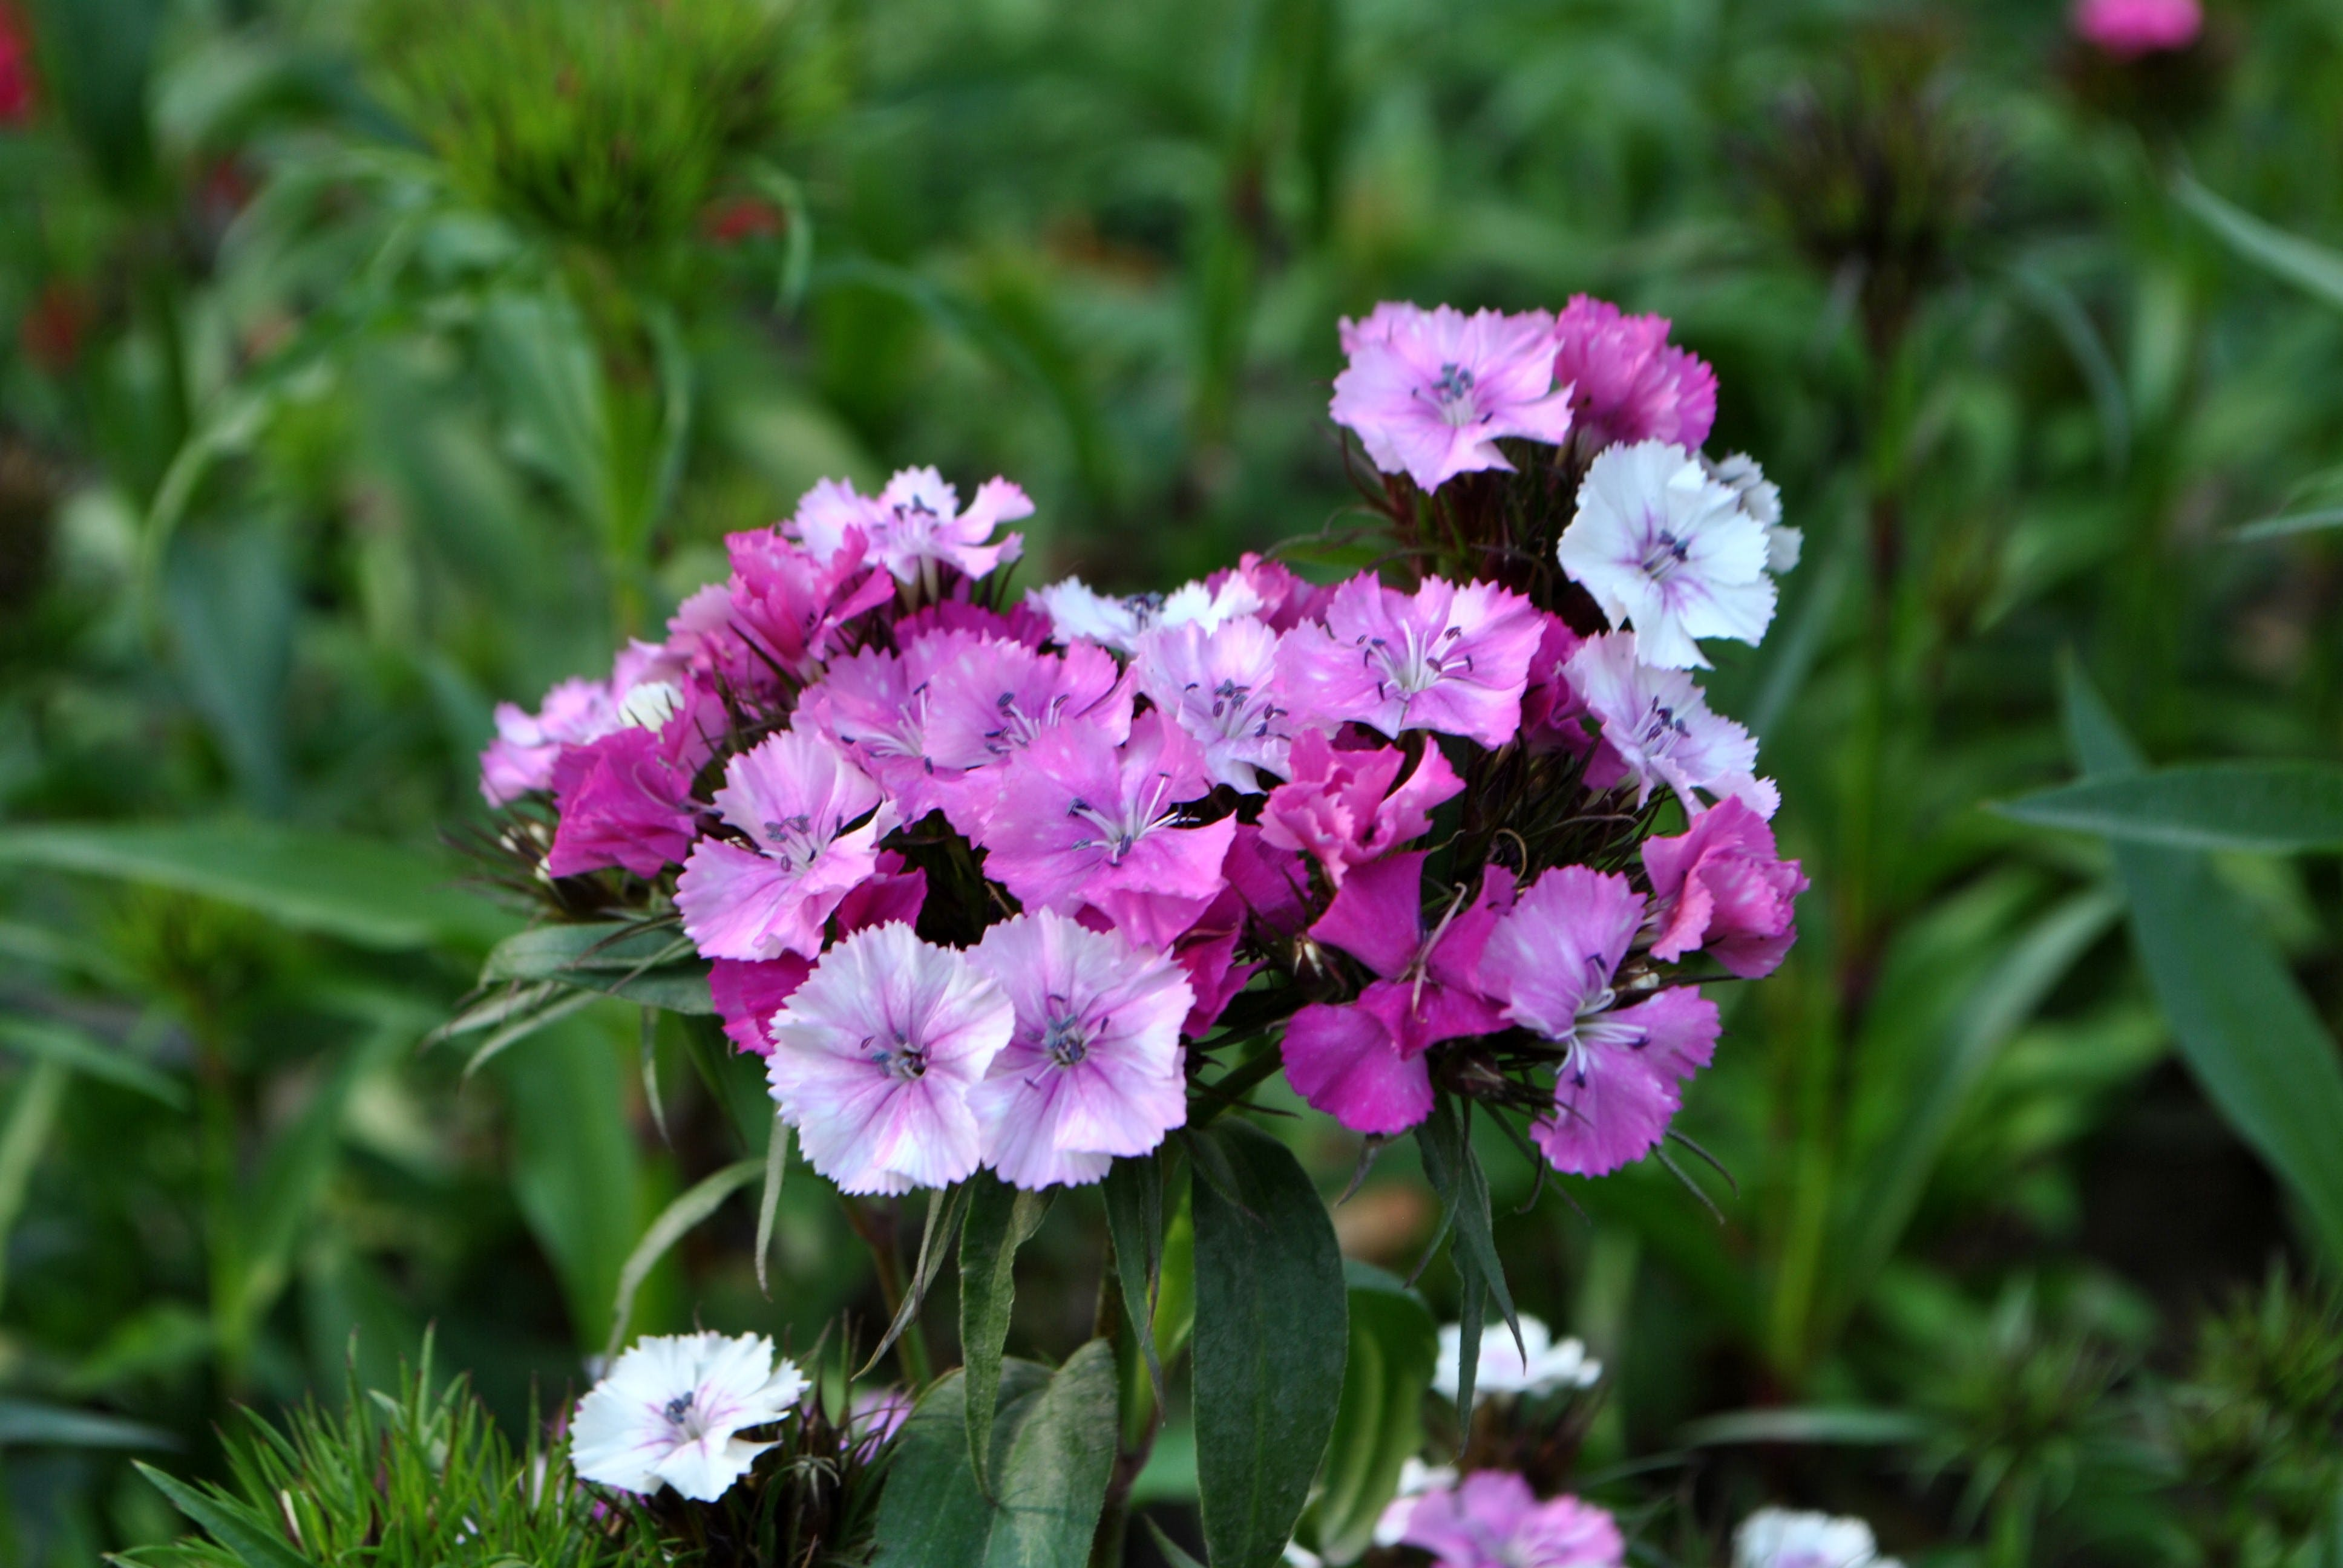 Shallow Focus of Pink Flowers